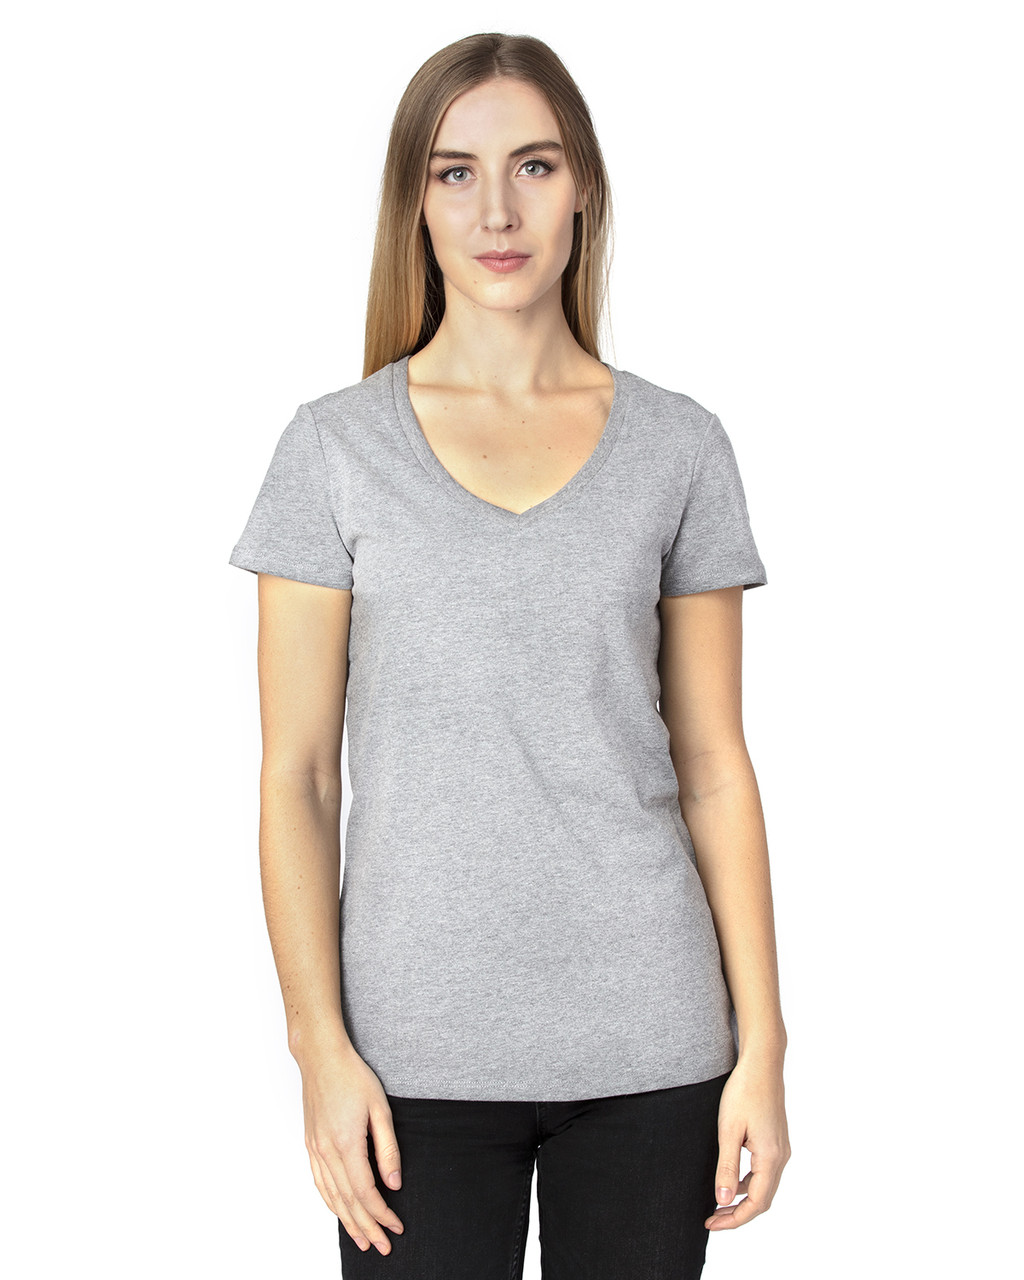 Heather Grey - 200RV Threadfast Ladies' Ultimate Short-Sleeve V-Neck T-Shirt | BlankClothing.ca